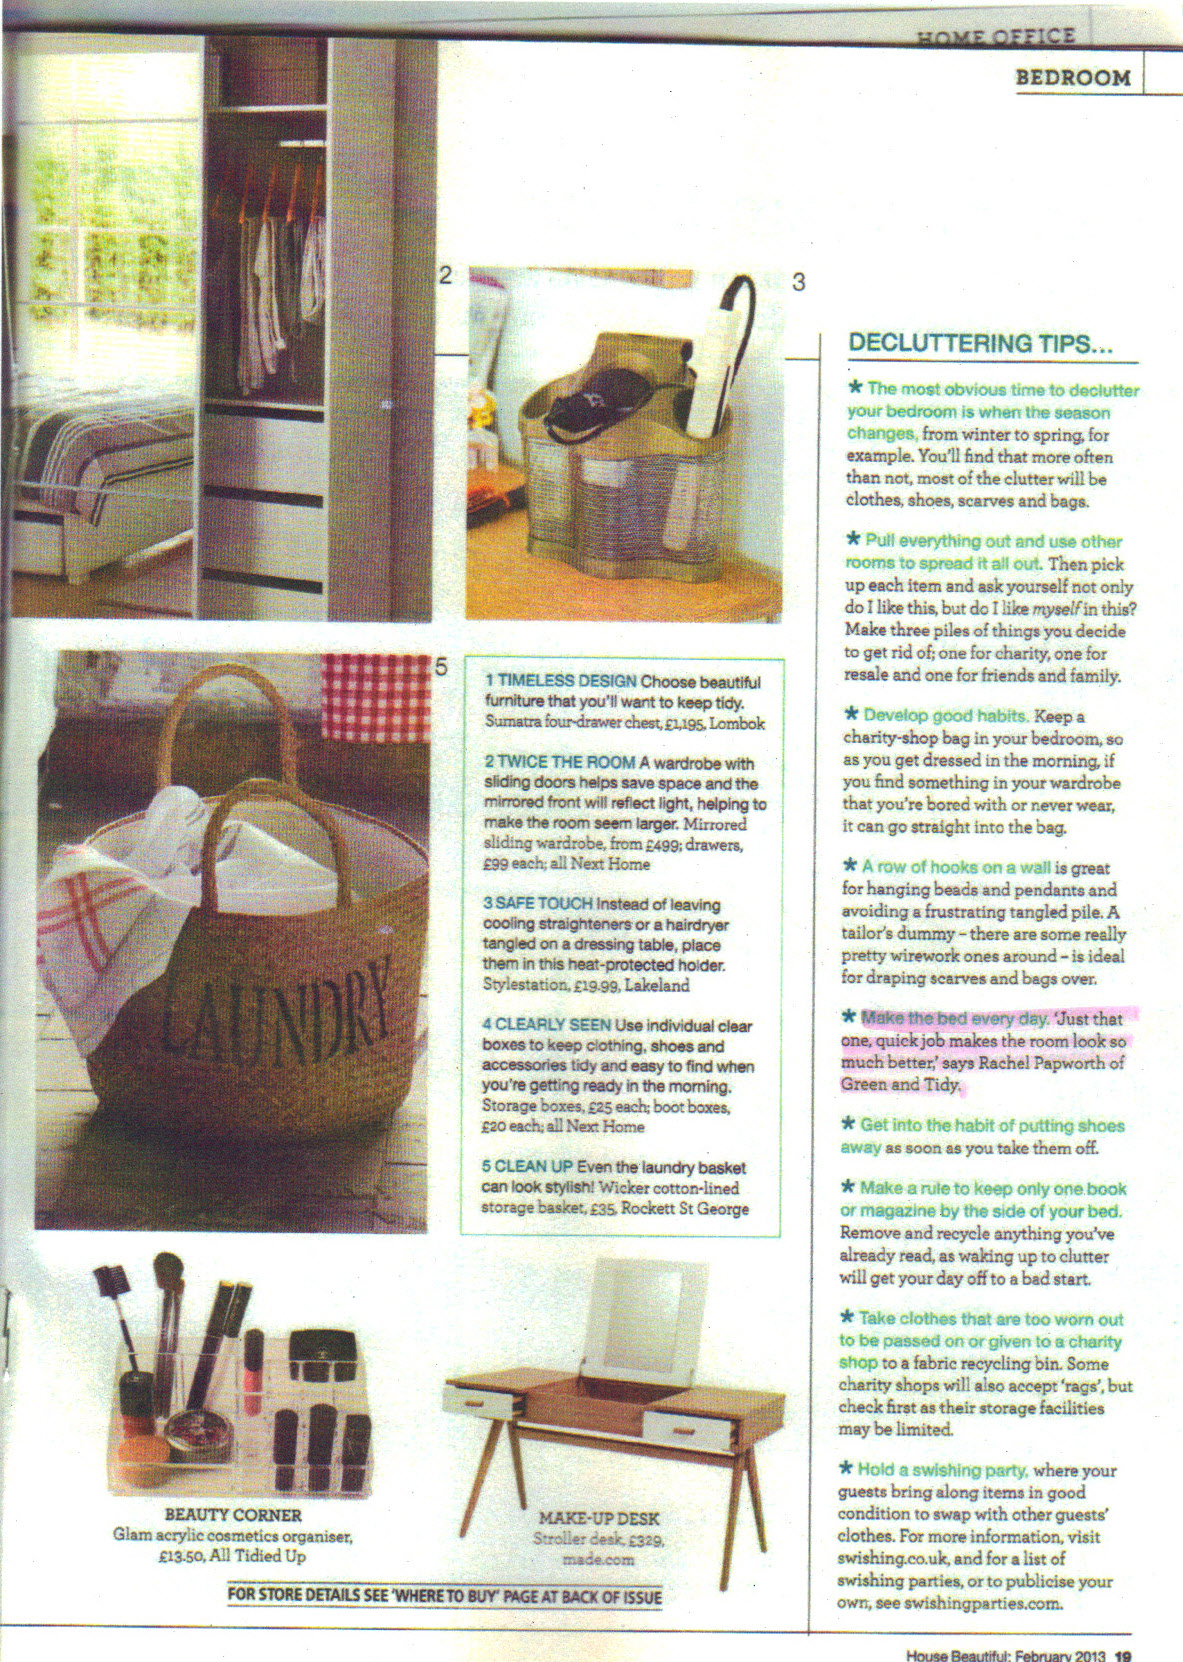 House Beautiful Feb 2013 p19 -  highlight